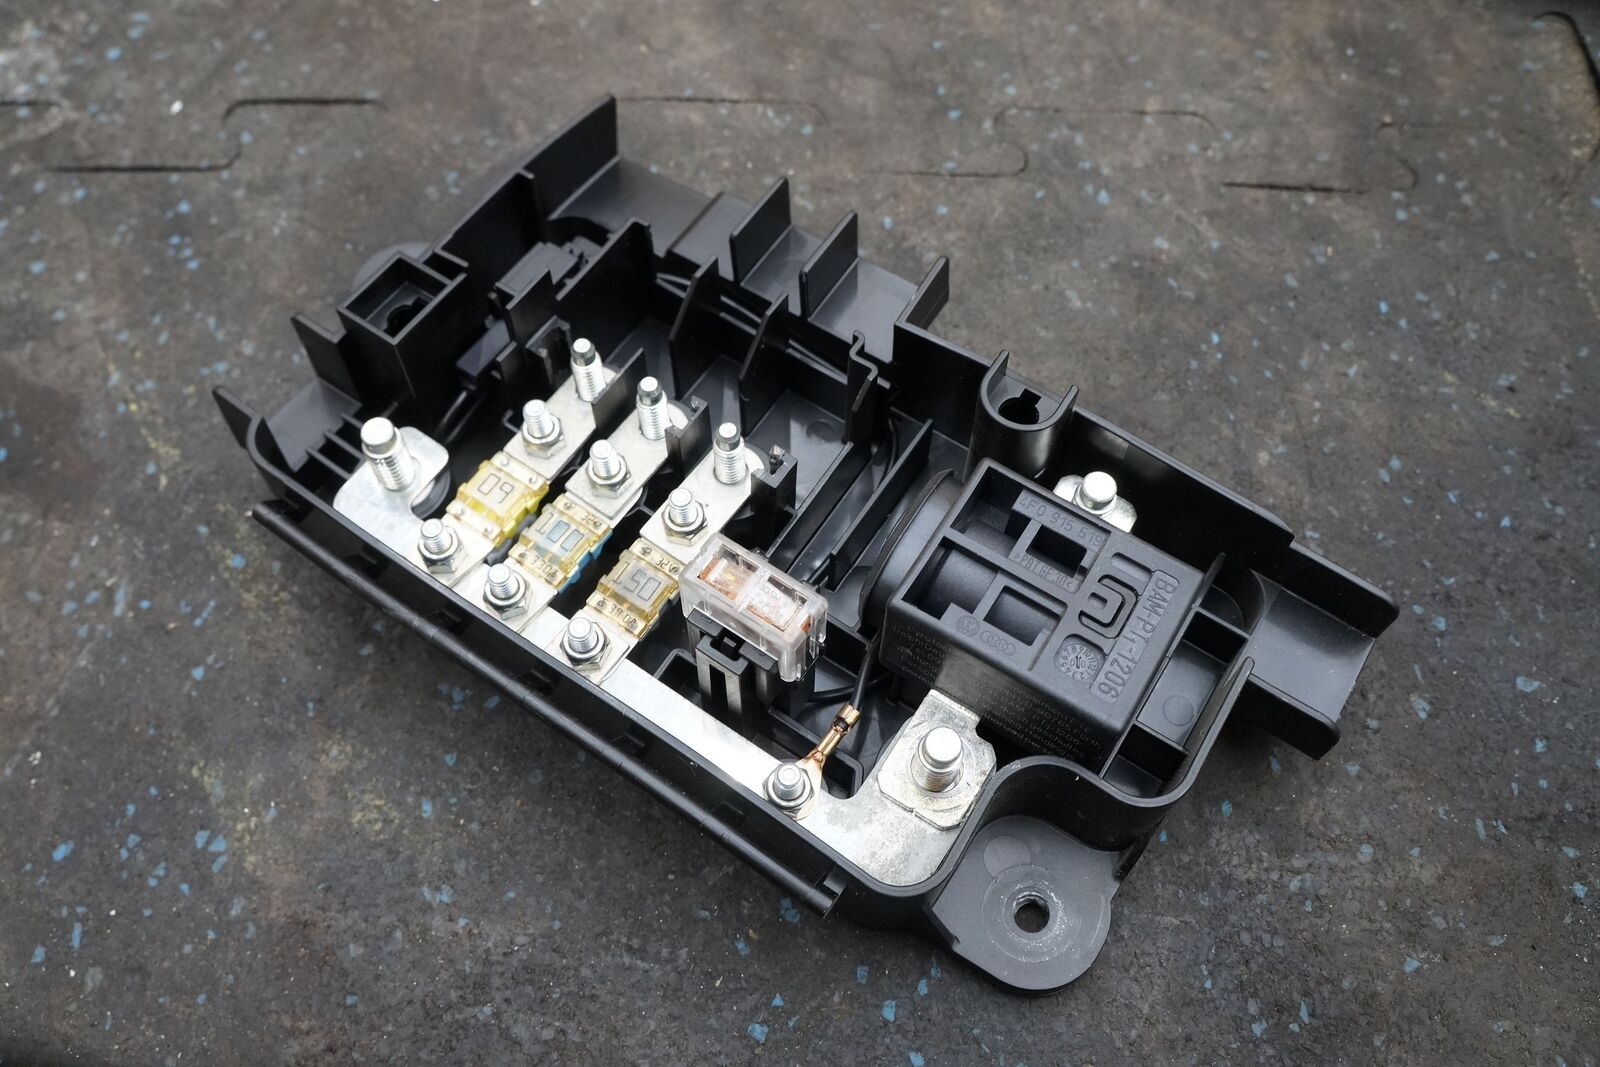 WRG-3124] Audi Tt Fuse Box Location